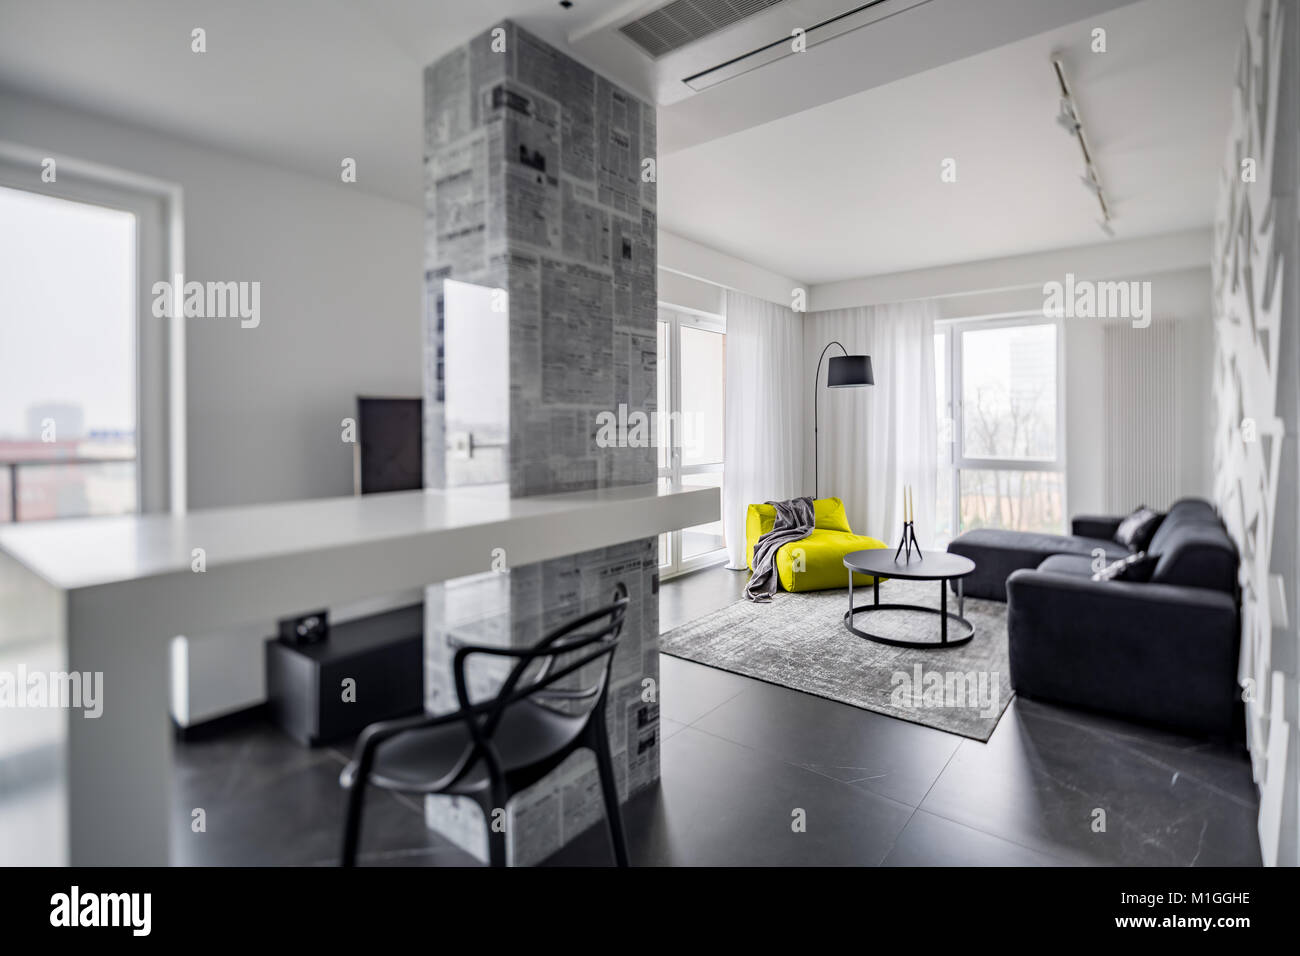 Black and white home interior with bright green chair Stock Photo